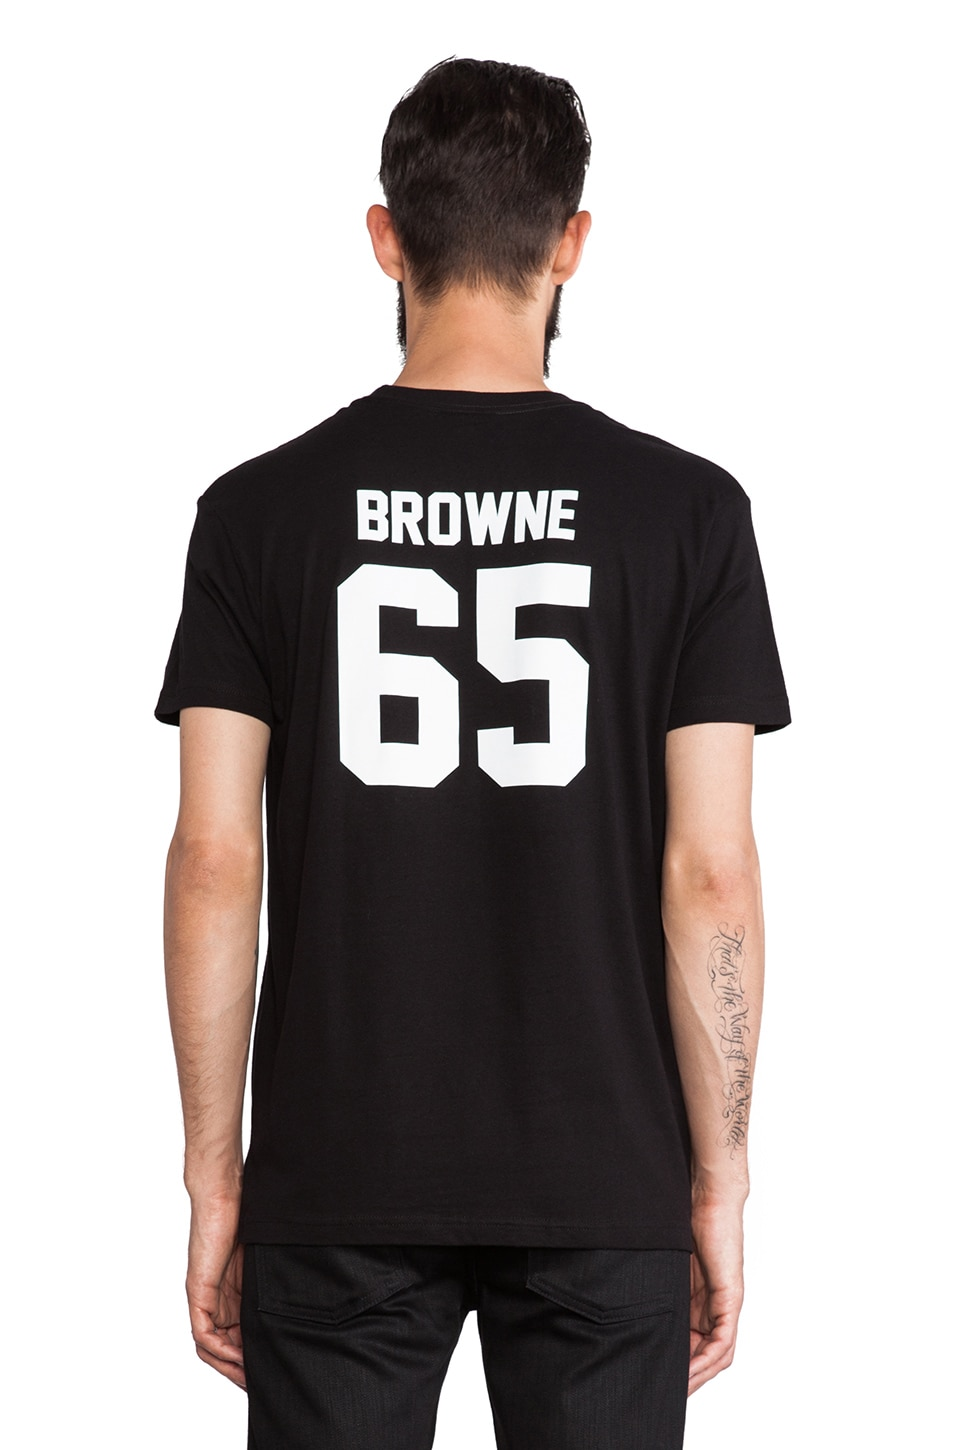 LPD New York Browne Tee in Black with White Print